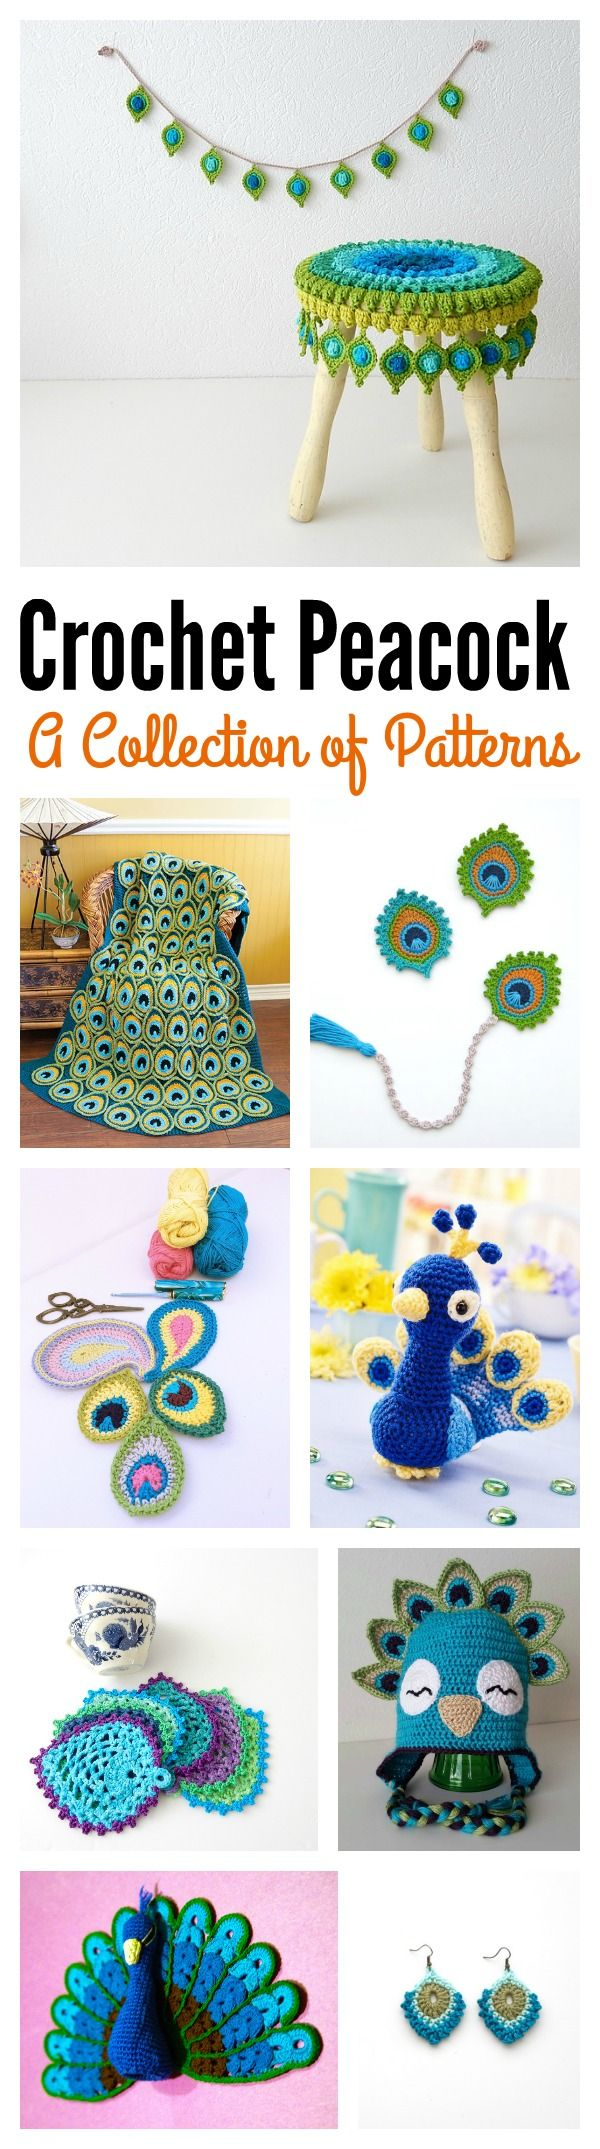 A Collection of Peacock Crochet Patterns